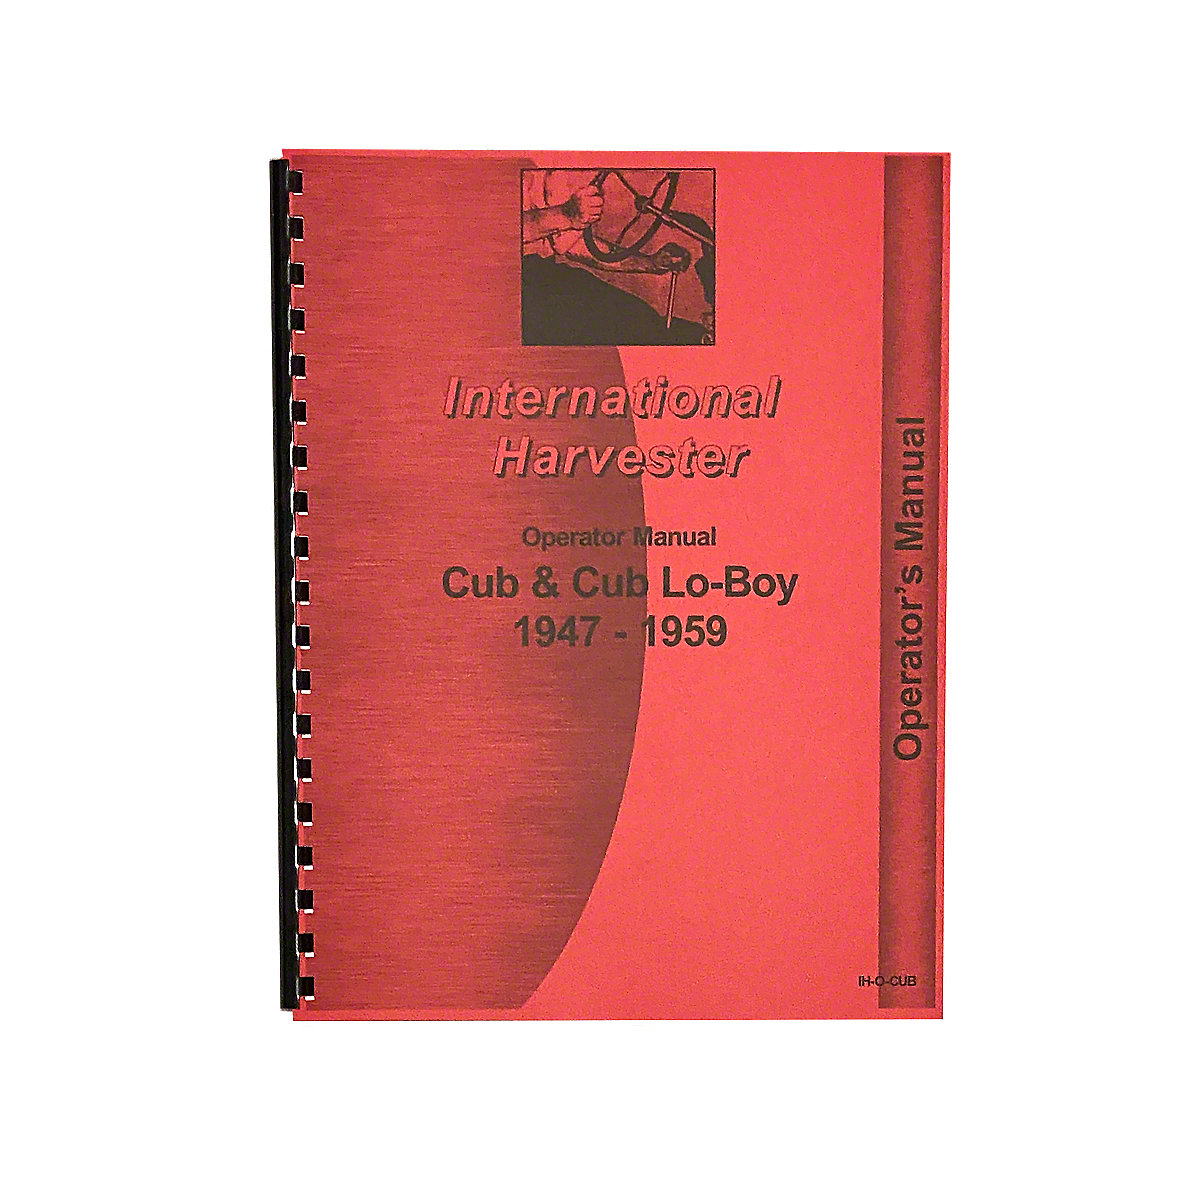 Farmall Cub Diagram Electrical Schematics 1949 International Wiring Rep081 Operators Manual Firing Order Source